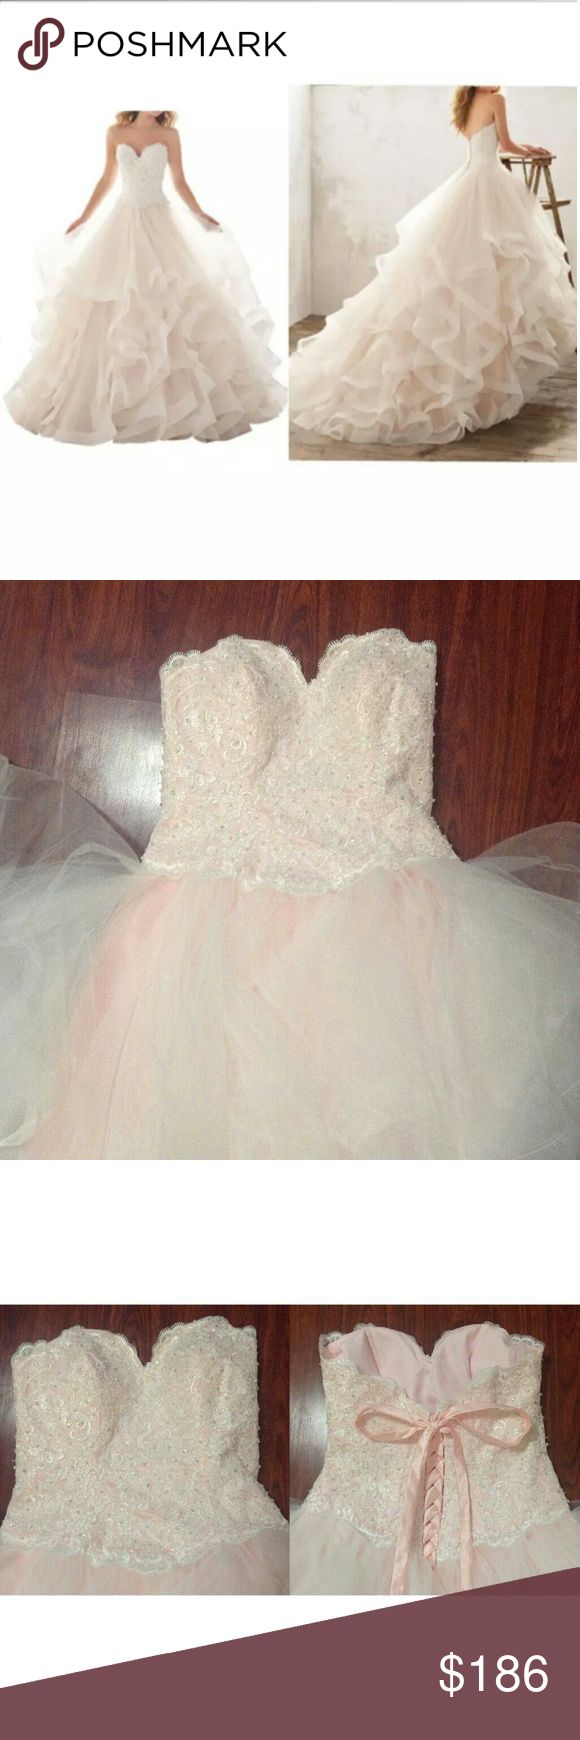 "NEW Pink Strapless Beaded Ruffled Wedding Dress US Women's Size 14.  MINIMUM NATURAL HEIGHT REQUIREMENT IS 5'5""!!!  Features: Strapless Padded in the bust Adjustable lace up Floral design w/ bling blings Ruffled layers Front white underslip under ruffles is shorter than the back. I suppose it's supposed to have a train.  Note***6th and 7th photos are not of this pink dress. I modeled the peach color dress in the same style size 8 a while back. It's just to let you see how it'll look on"